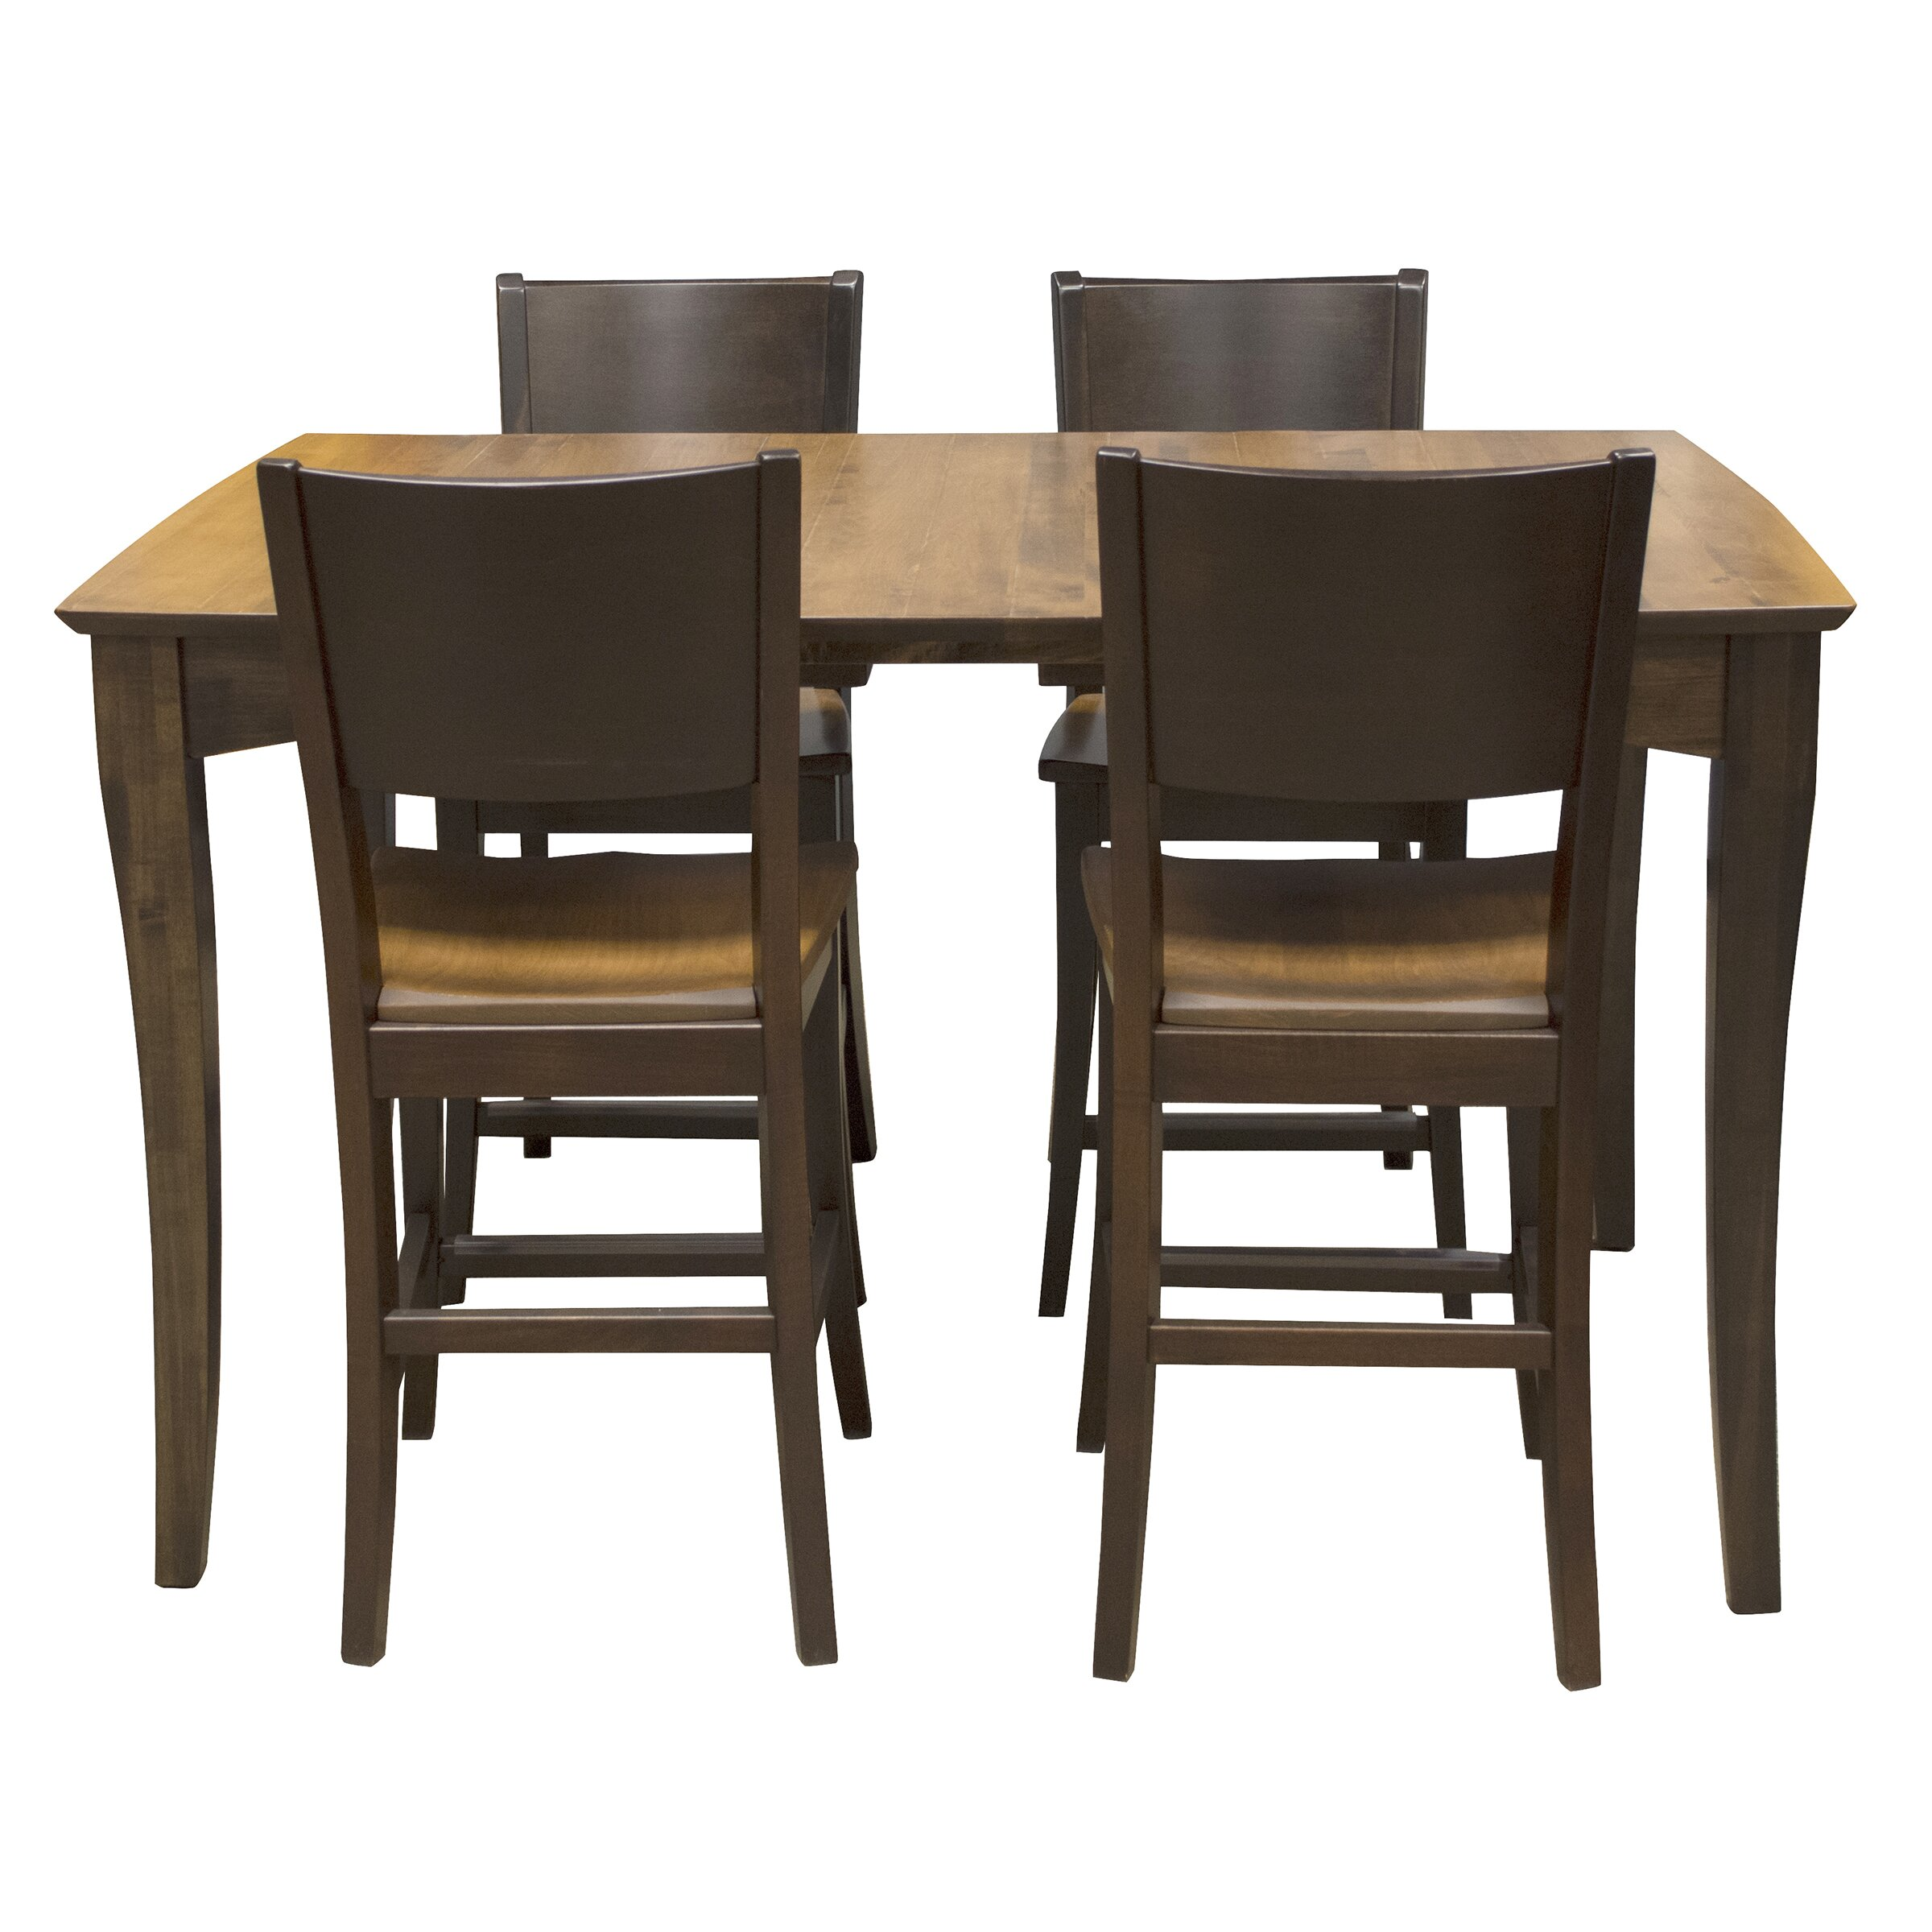 Furniture Kitchen & Dining Furniture ... 5 Piece Kitchen & Dining Roo...